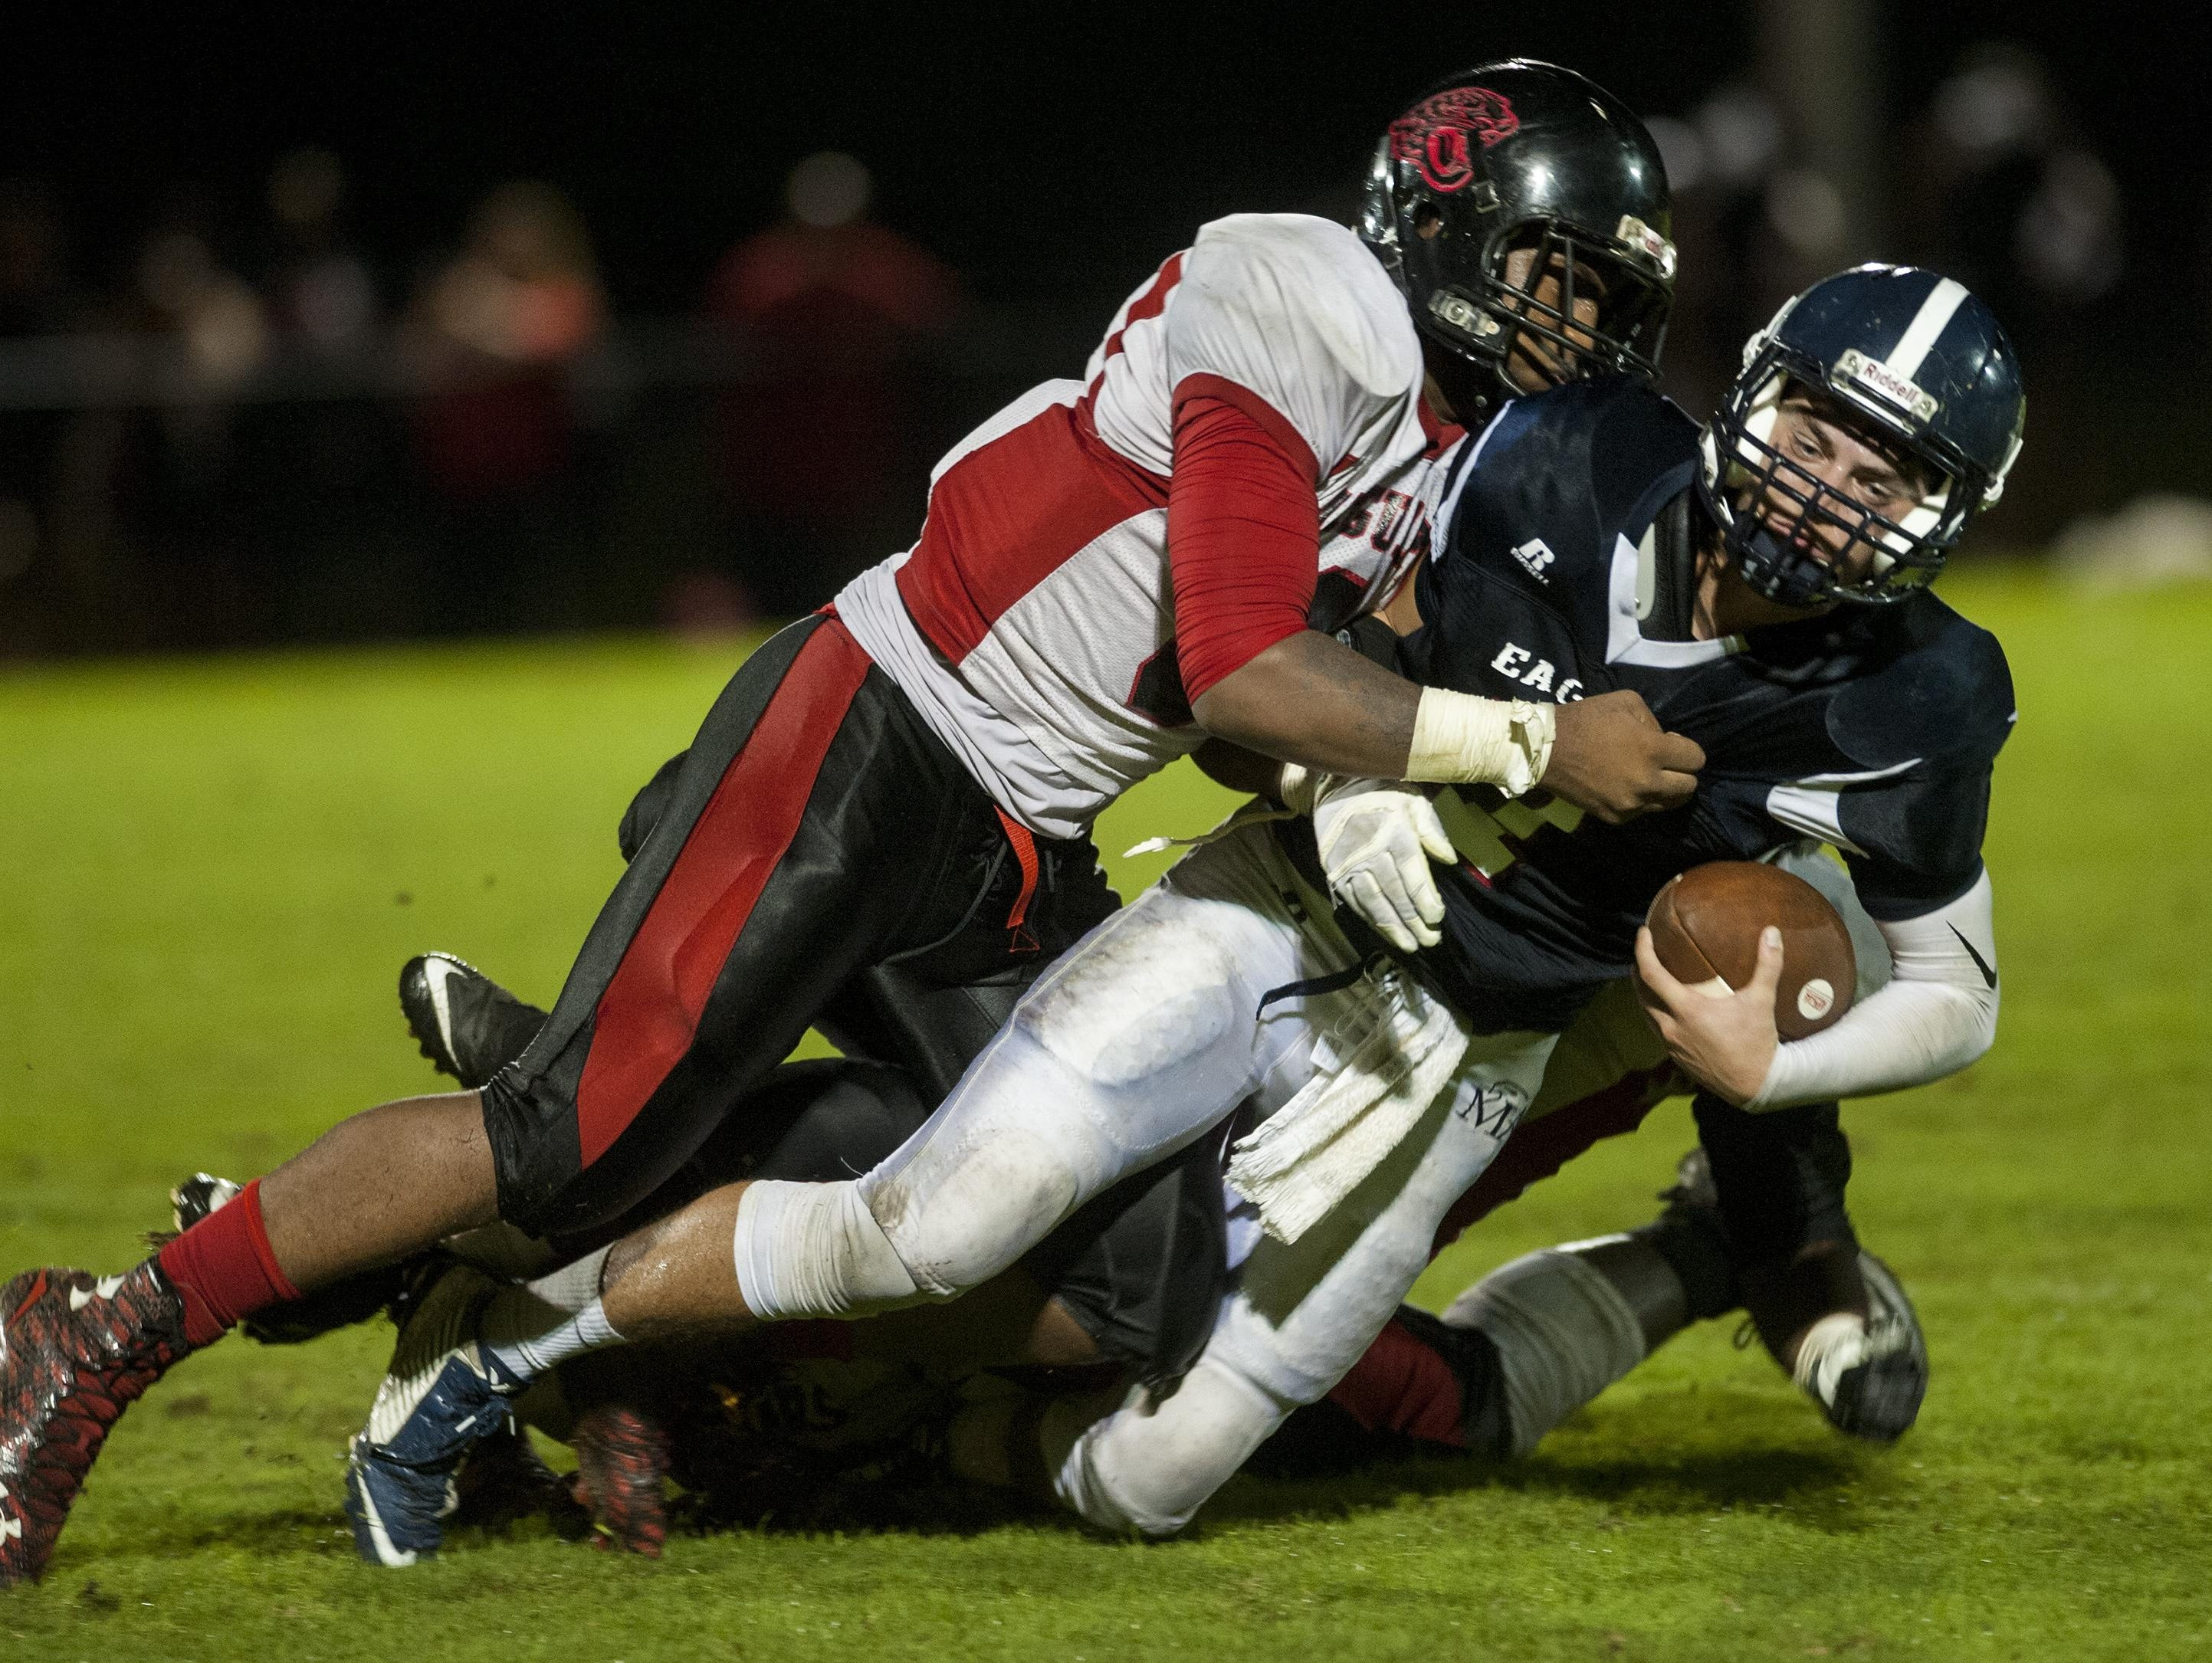 Montgomery Academy quarterback Barton Lester is sacked by Hillcrest defender Rajos Smith at the MA campus in Montgomery, Ala. on Friday November 6, 2015.